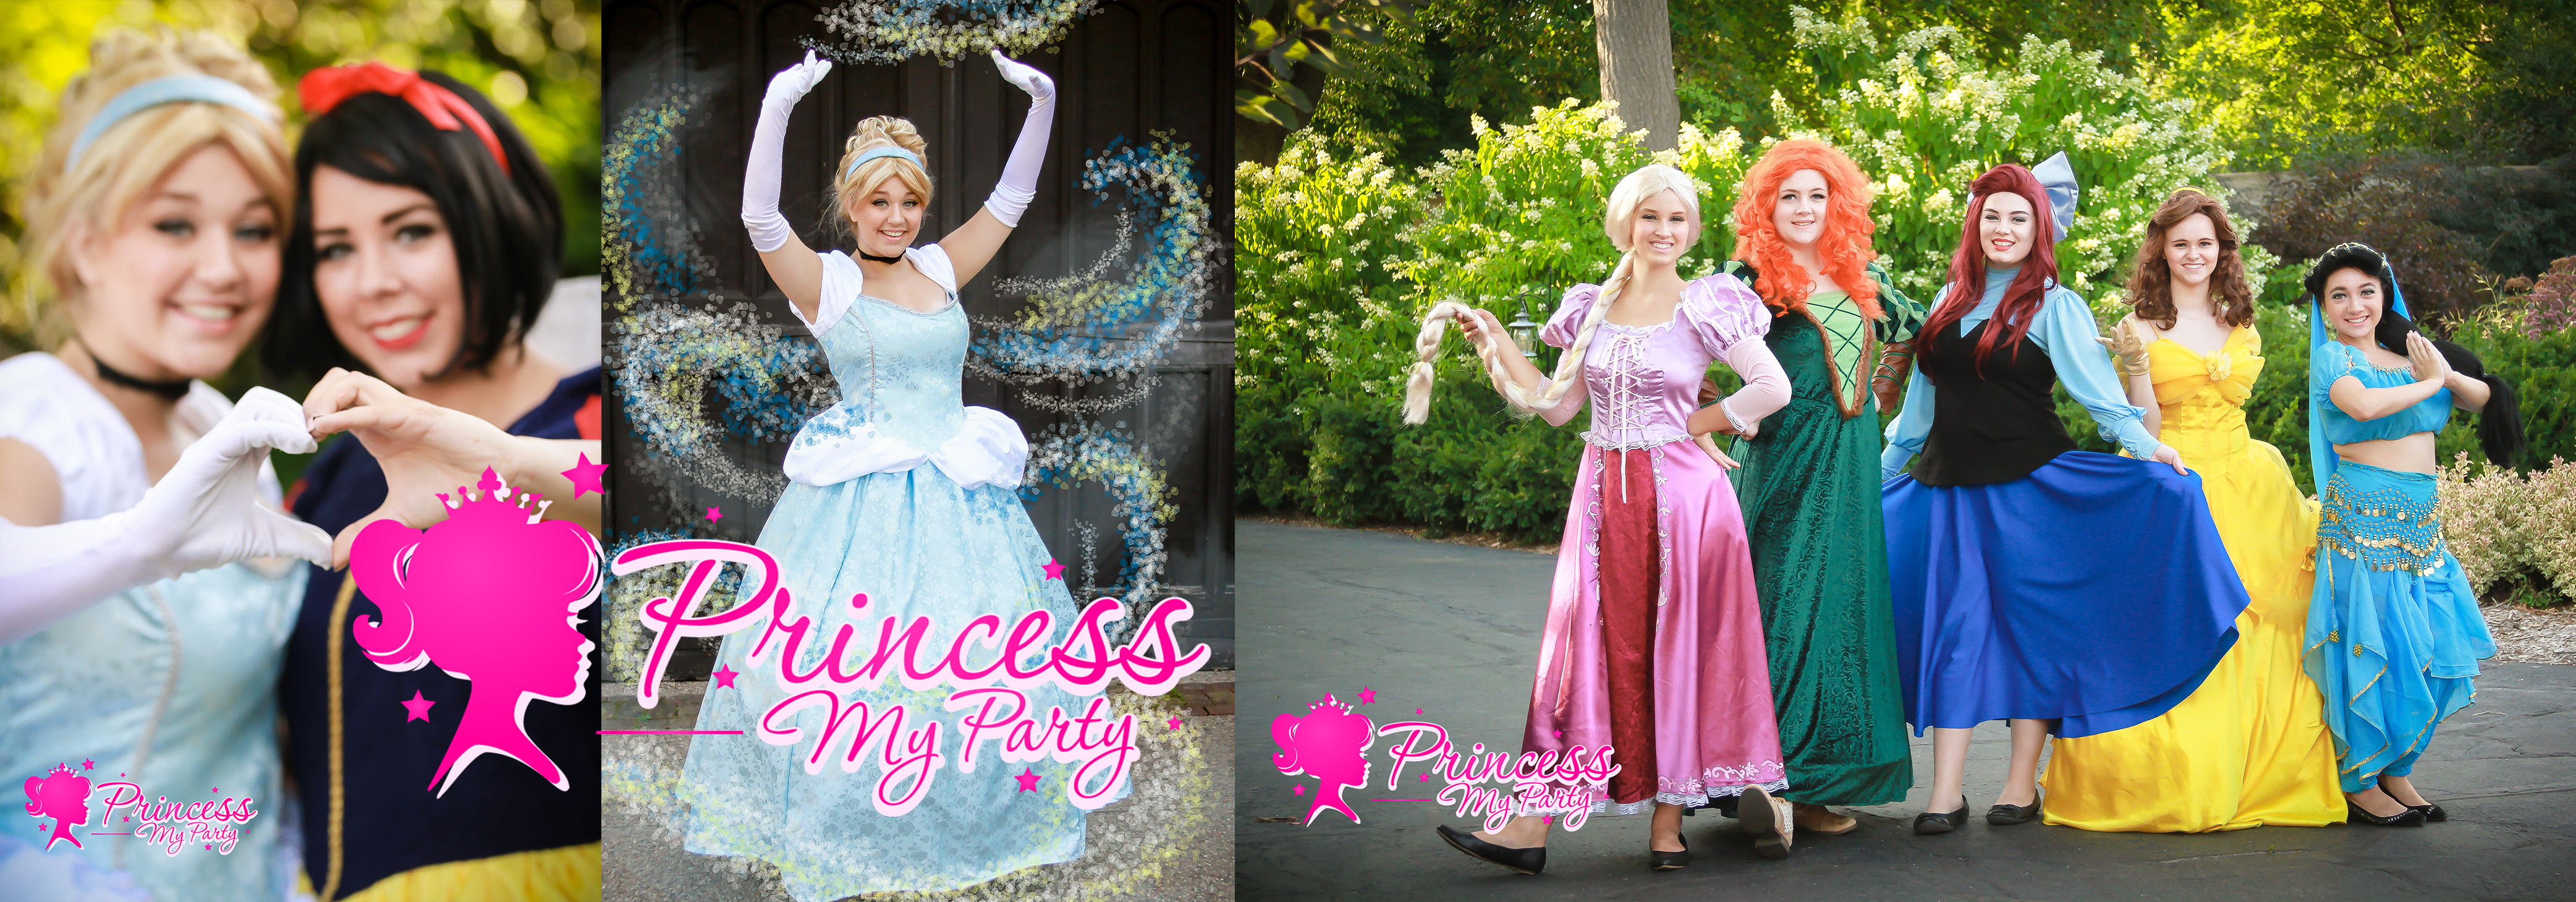 Princess My Parties